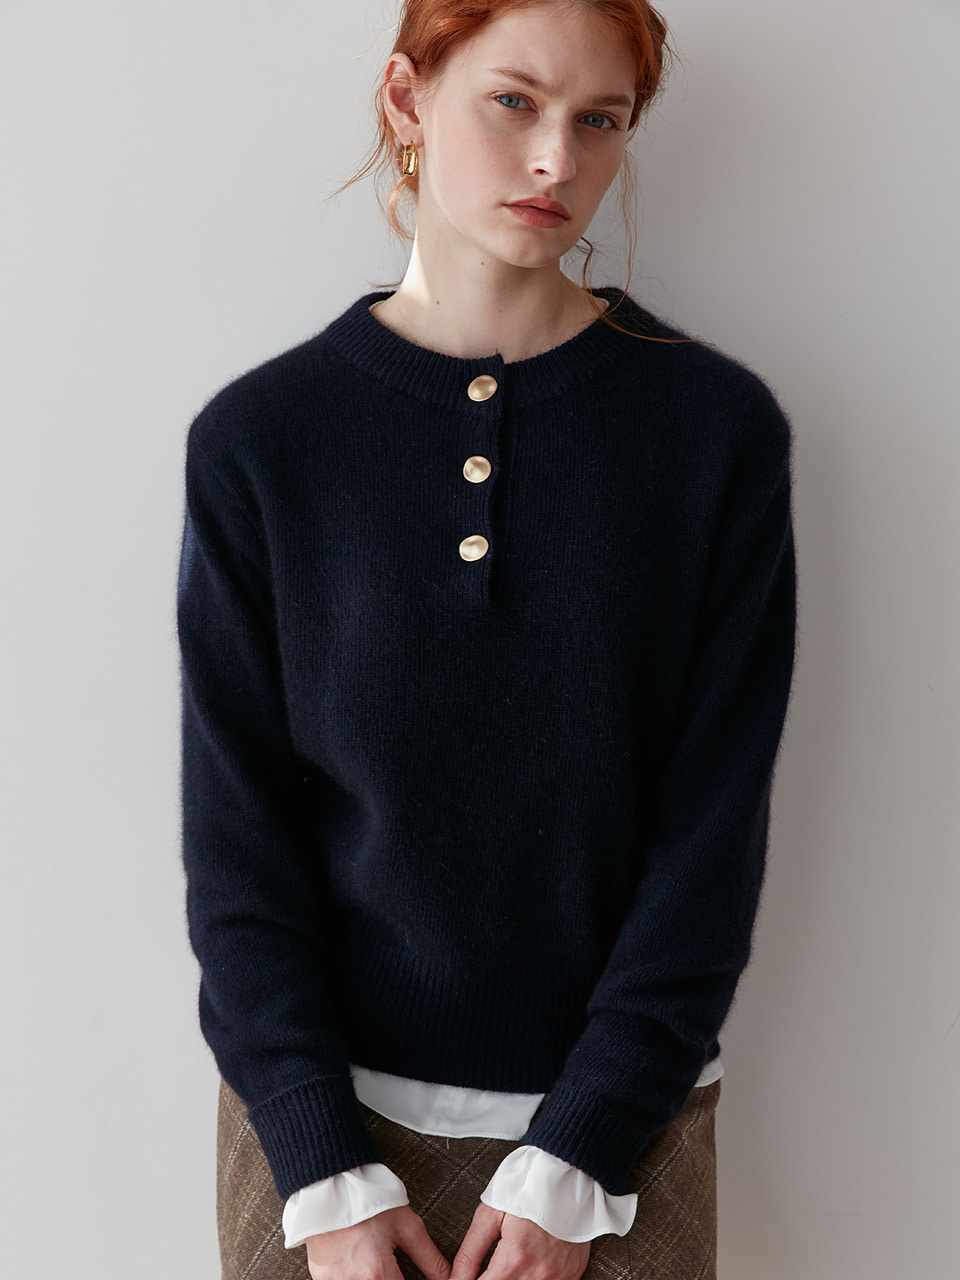 comos'257 henry neck button kint (navy)